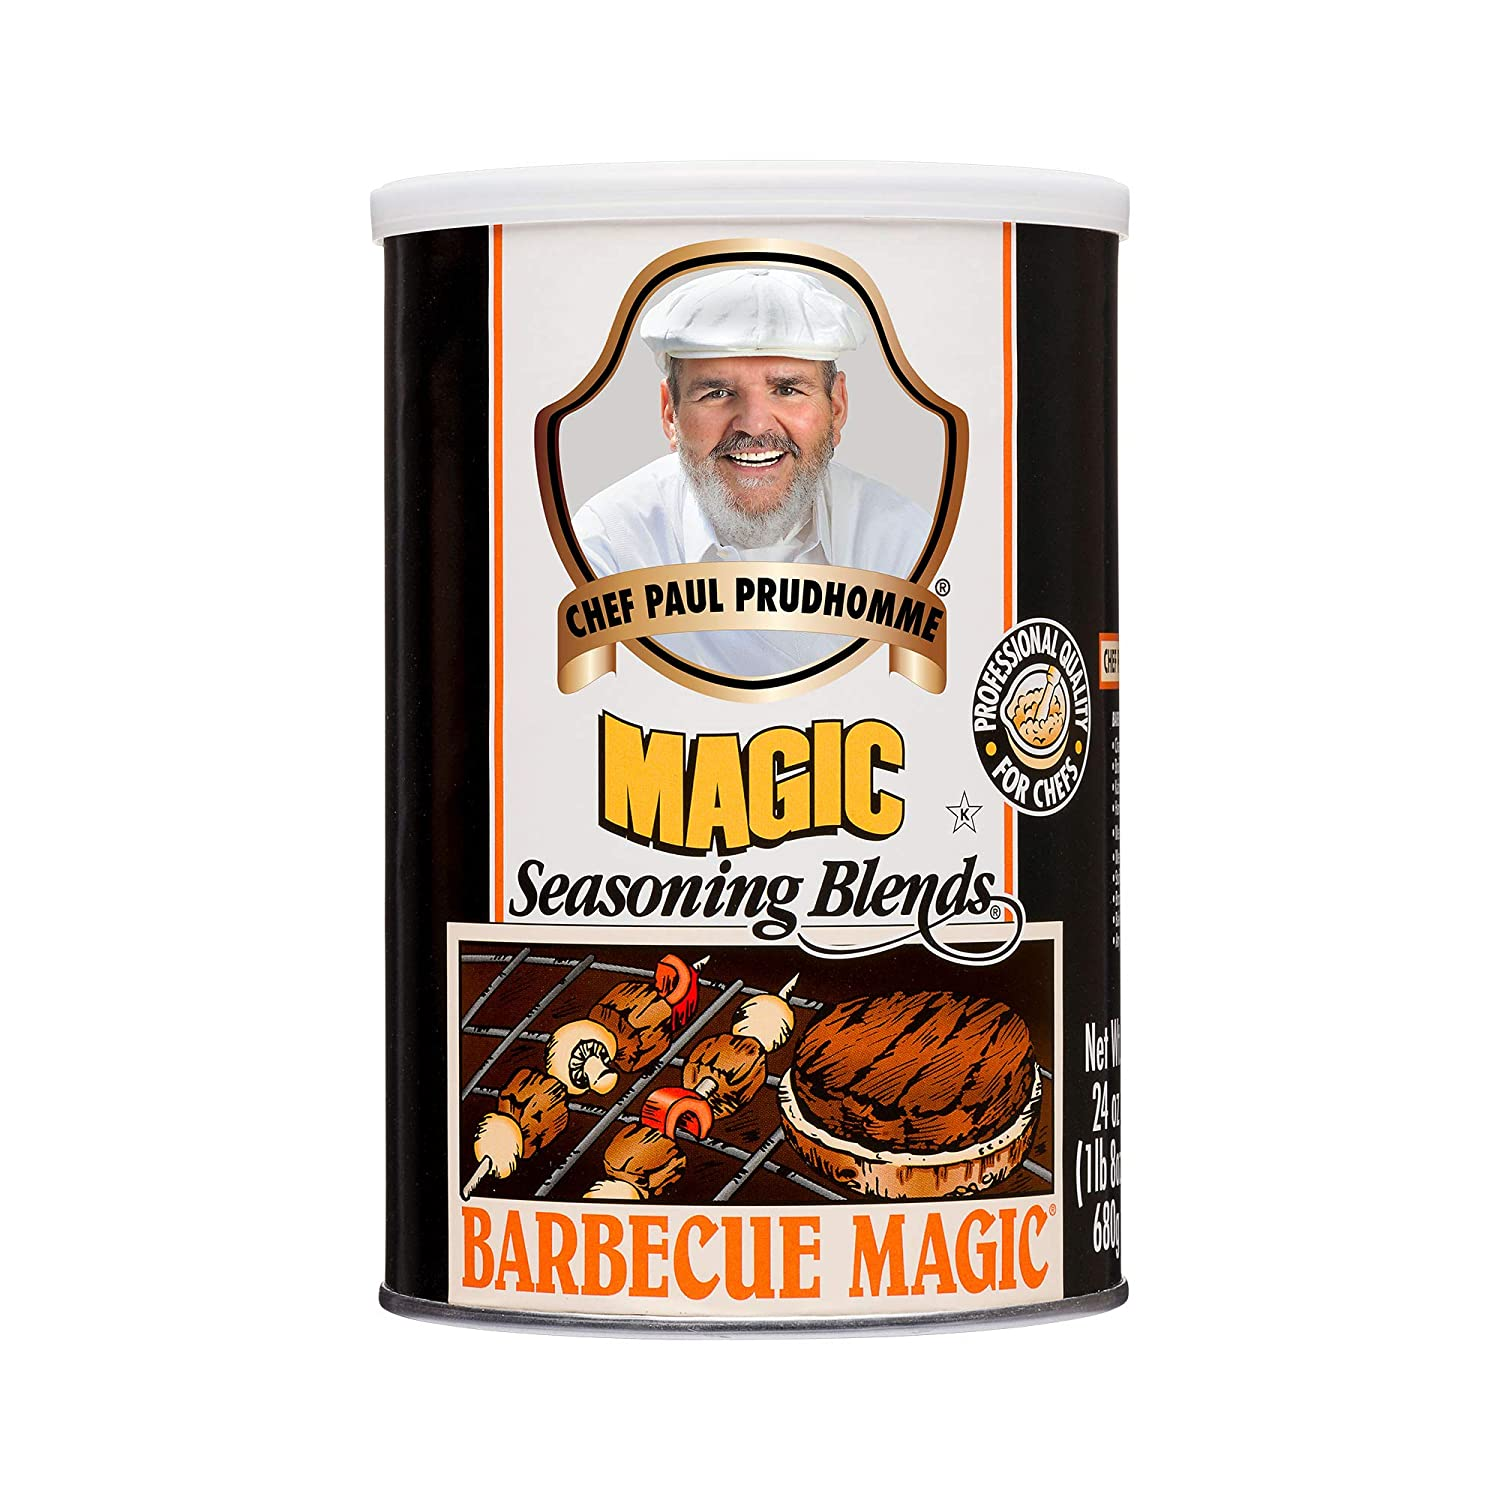 Chef Paul Prudhomme's Magic Seasoning Blends ~ Magic Barbecue Seasoning, 24-Ounce Canister